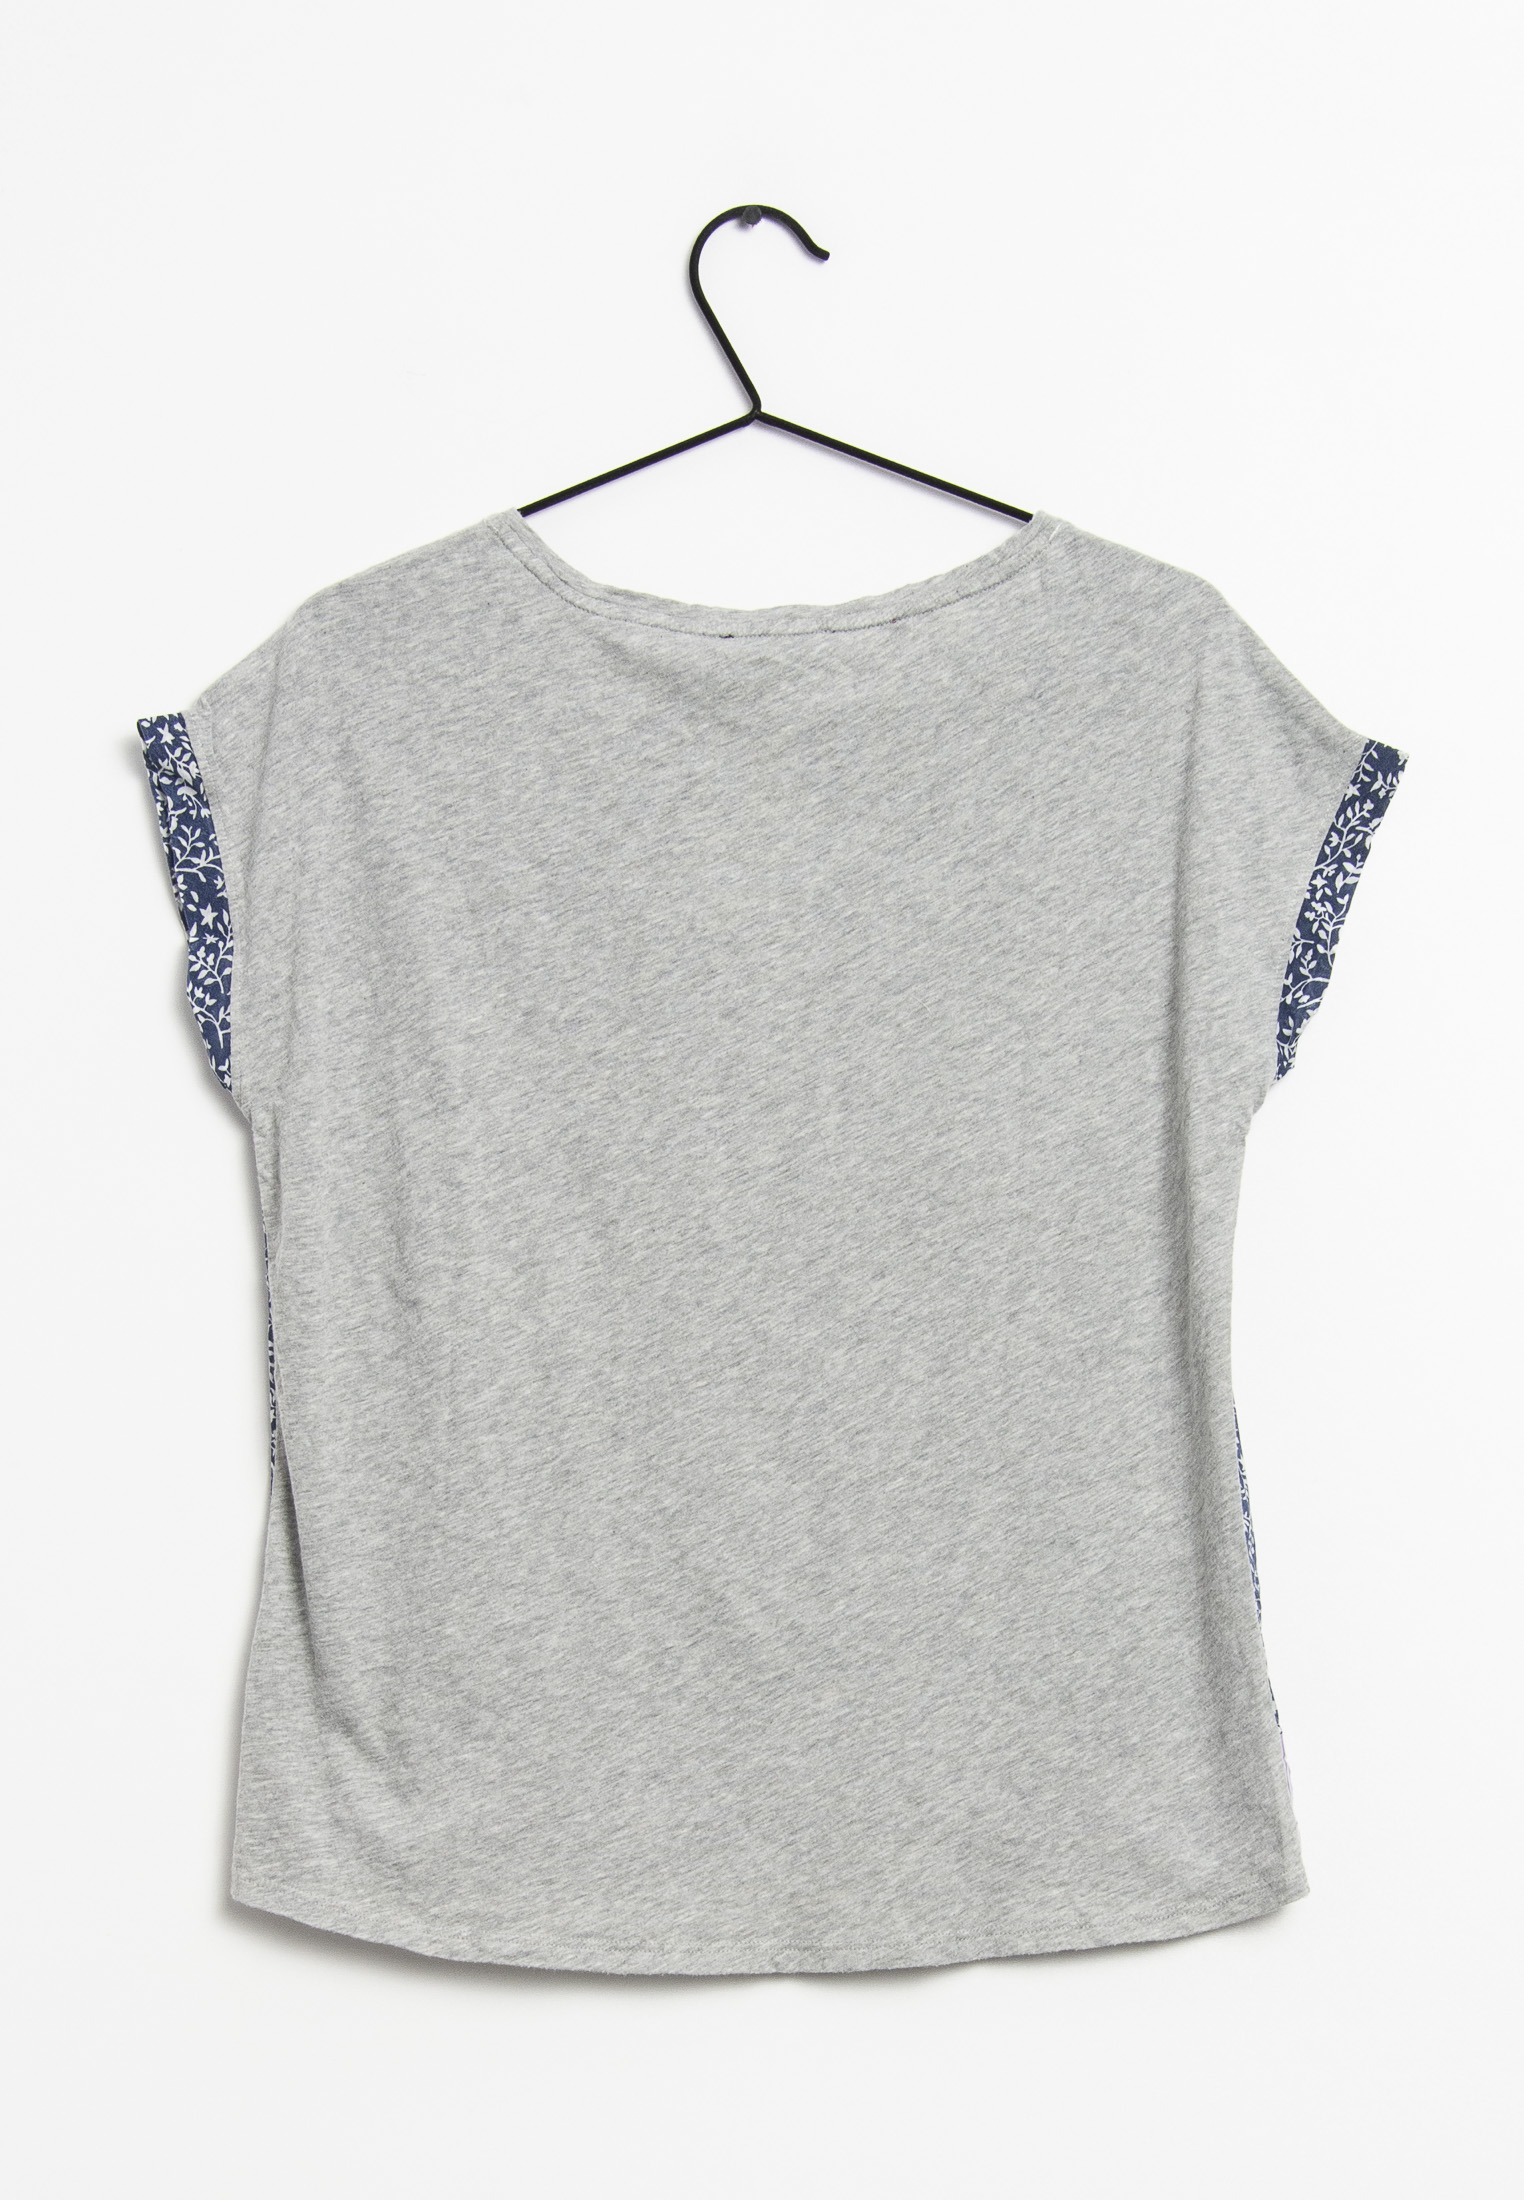 Marc O'Polo T-Shirt Blau Gr.XS